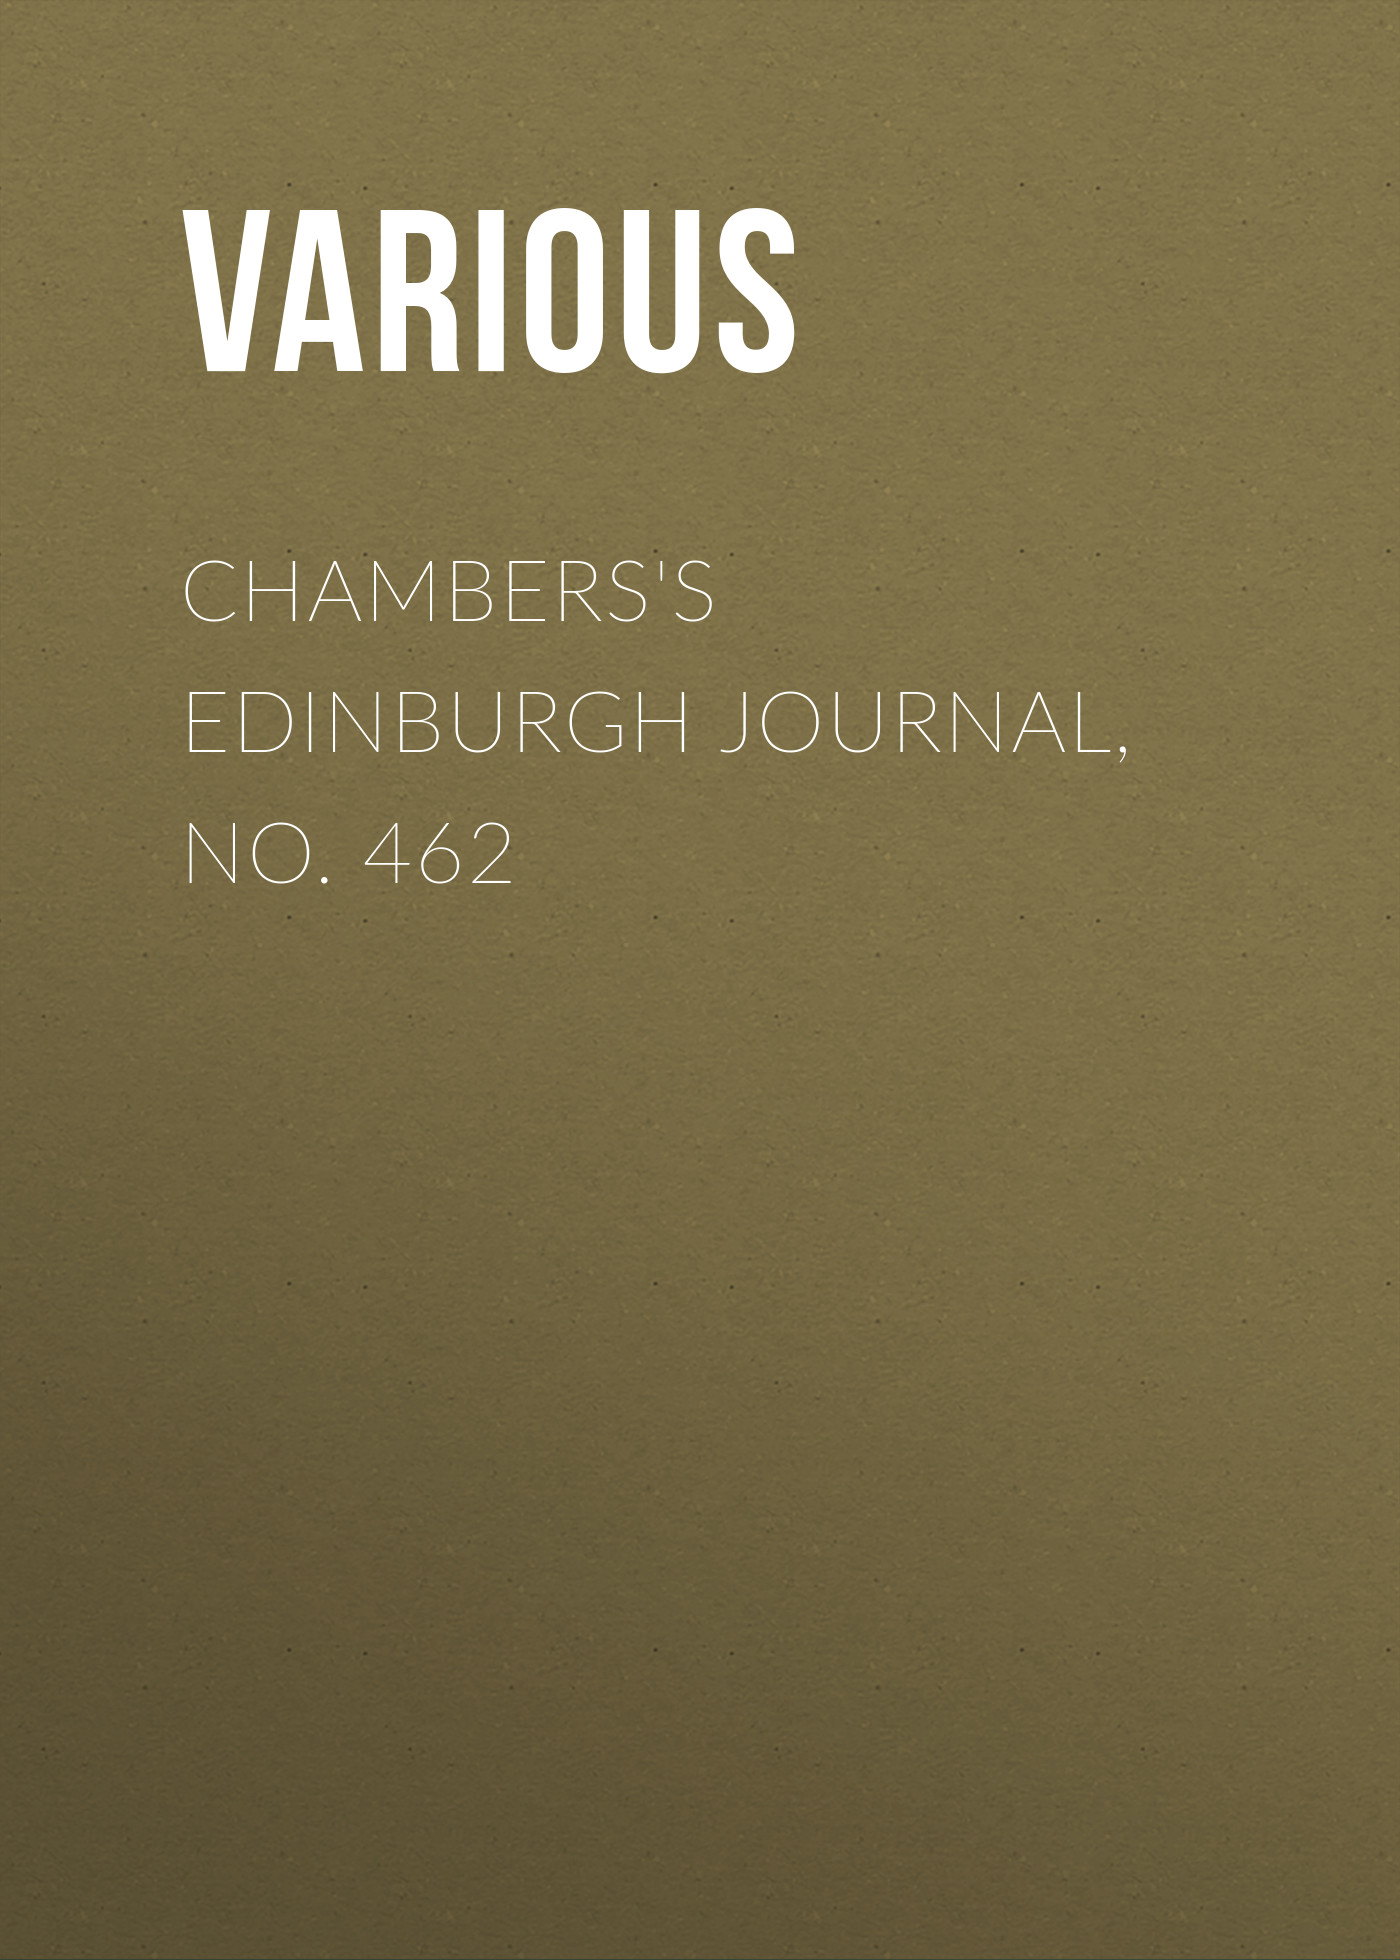 Various Chambers's Edinburgh Journal, No. 462 various chambers s edinburgh journal no 428